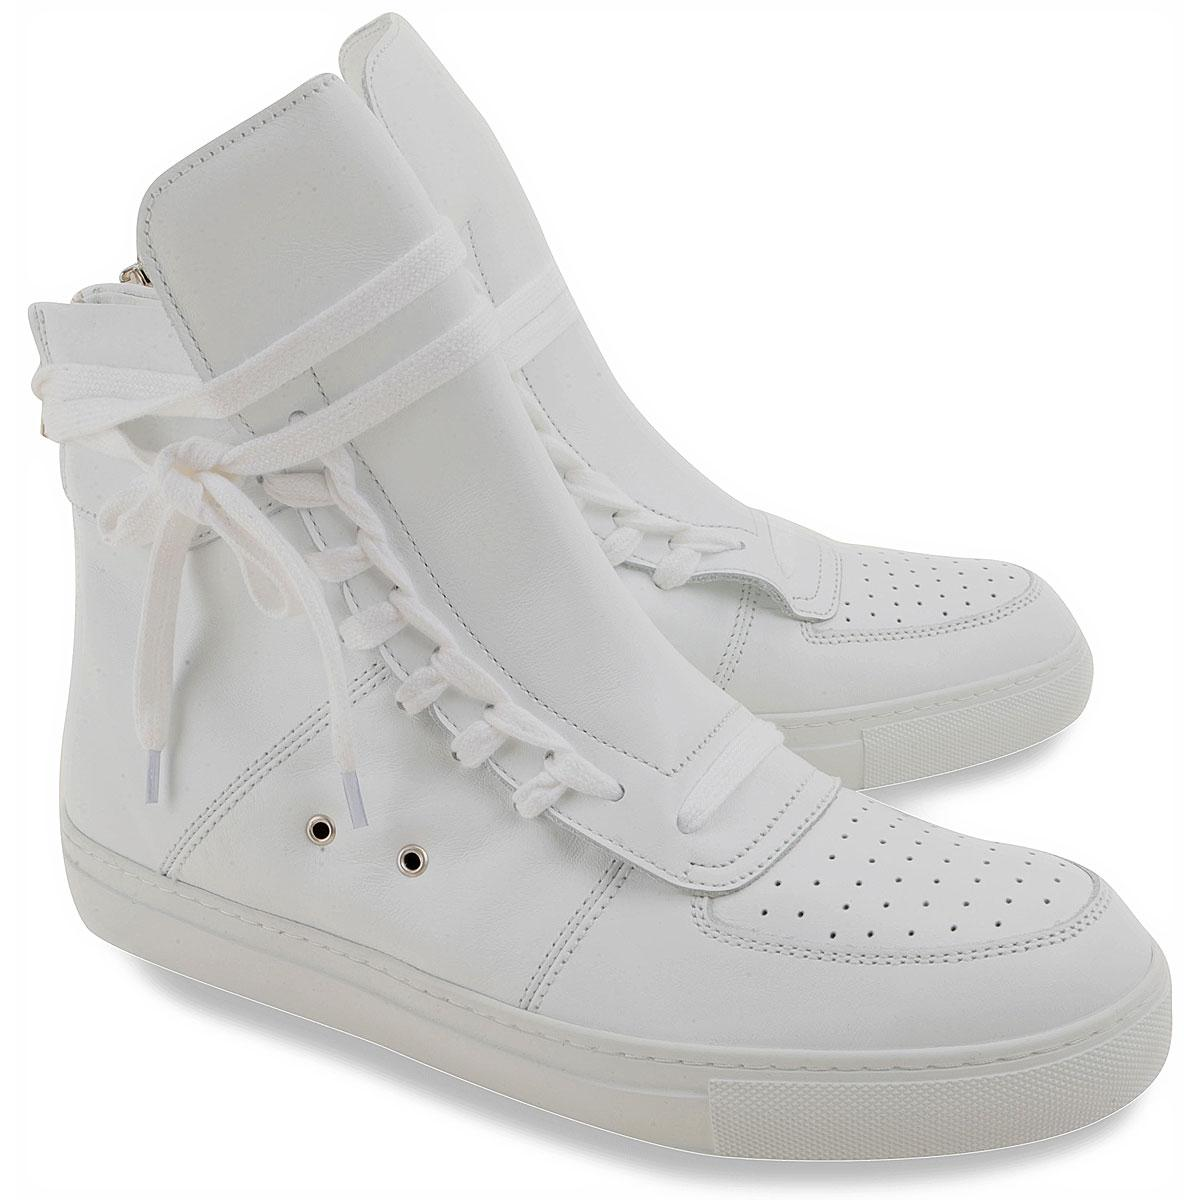 526371f8166b52 Lyst - Kris Van Assche Sneakers For Men On Sale in White for Men